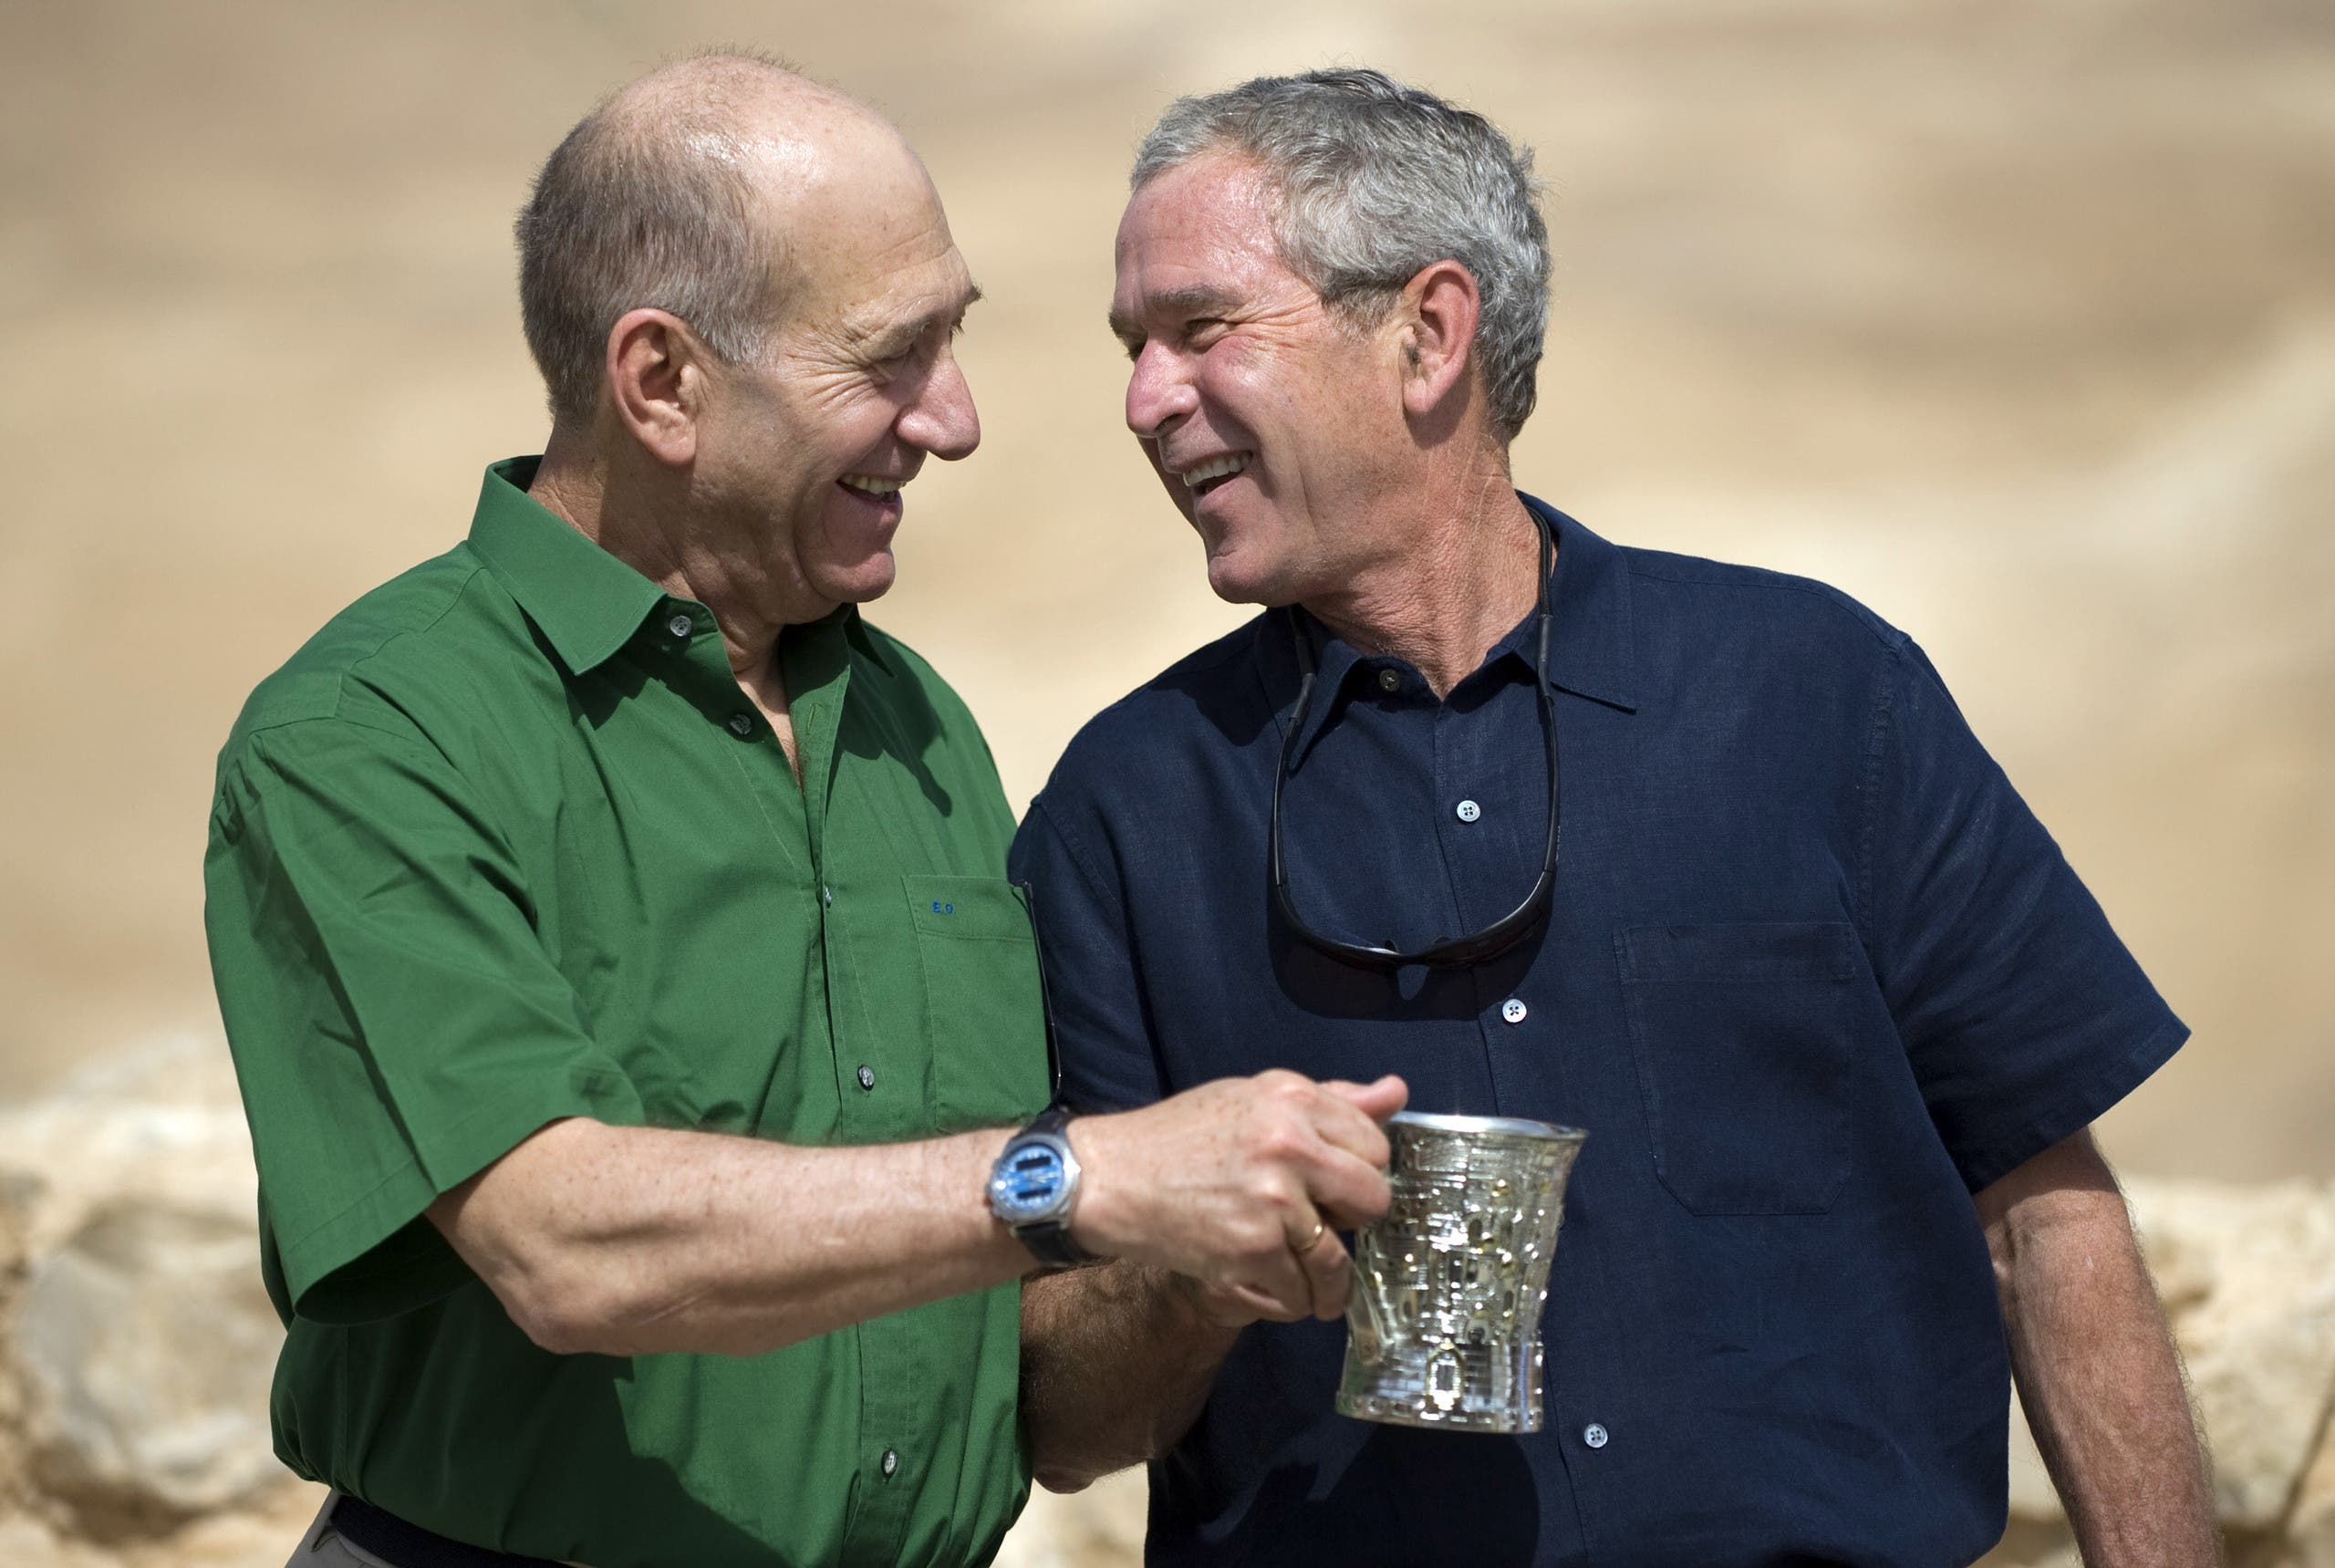 US President George W. Bush (R) and Israeli Prime Minister Ehud Olmert (L) laugh during a tour to the ancient hilltop fortress of Masada on May 15, 2008. (AFP)